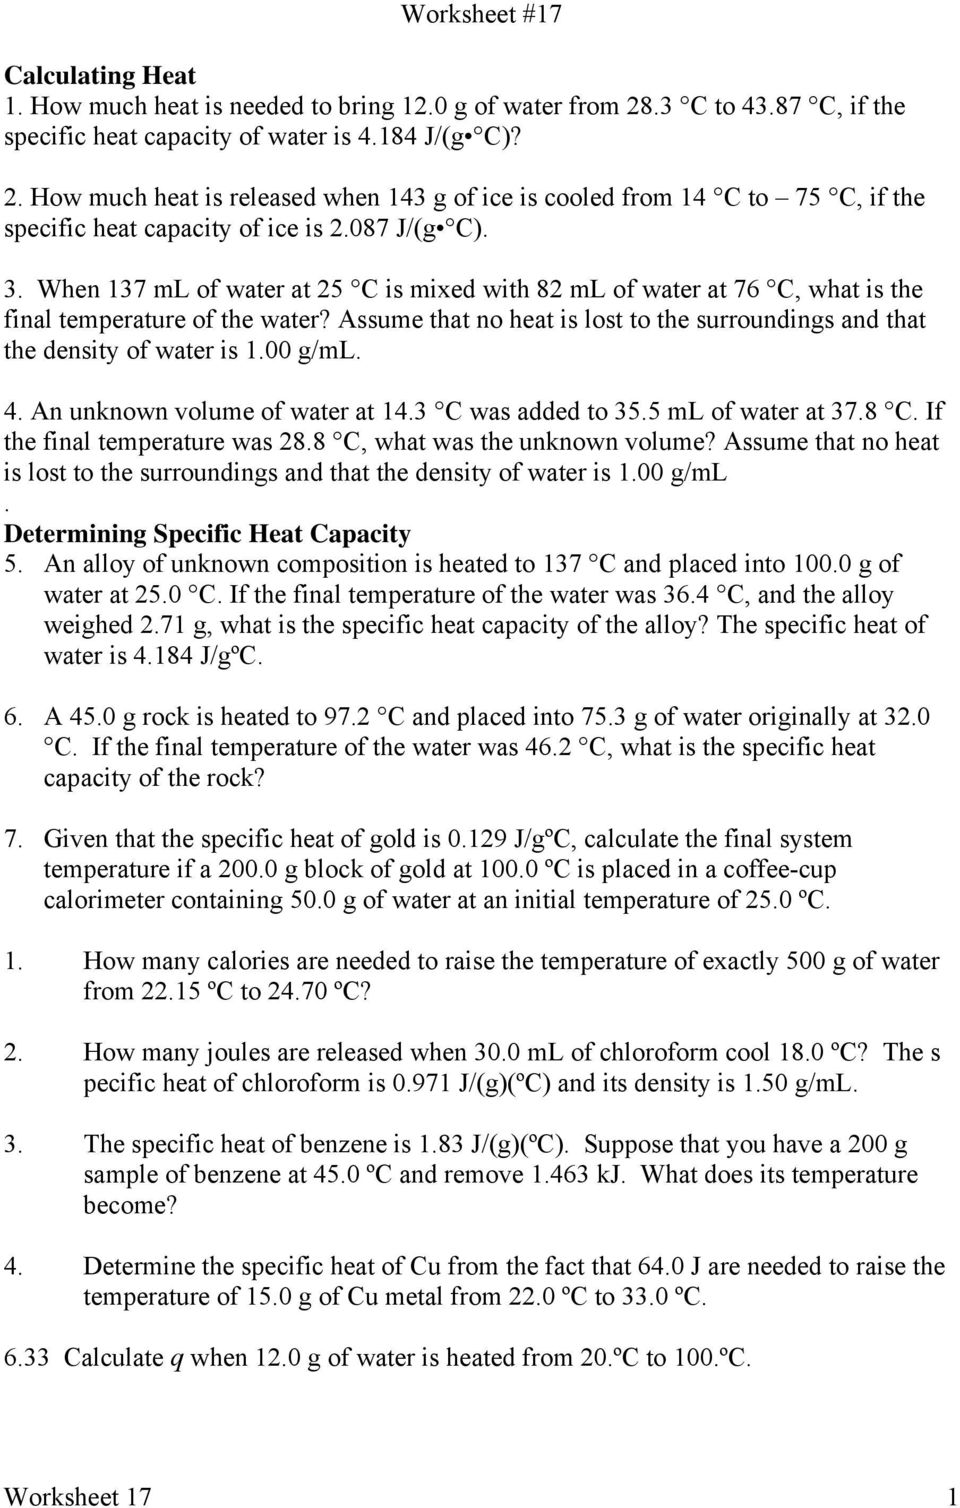 worksheet Specific Heat Capacity Worksheet worksheet how much heat is released when 143 g of ice cooled 137 ml water at 25 c mixed with 82 at